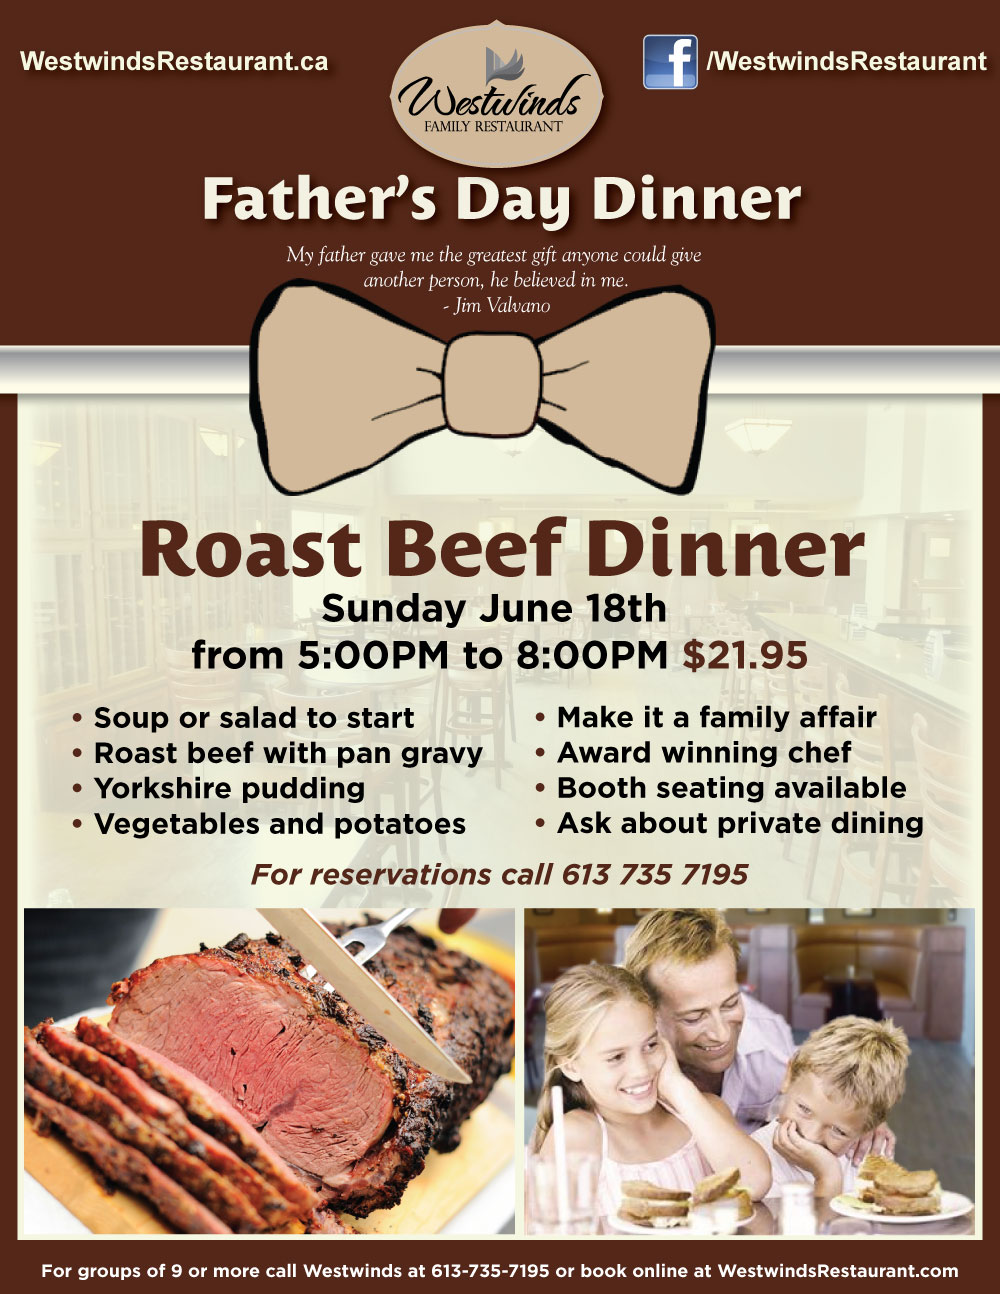 Treat Dad to a Roast Beef Dinner for Father's Day